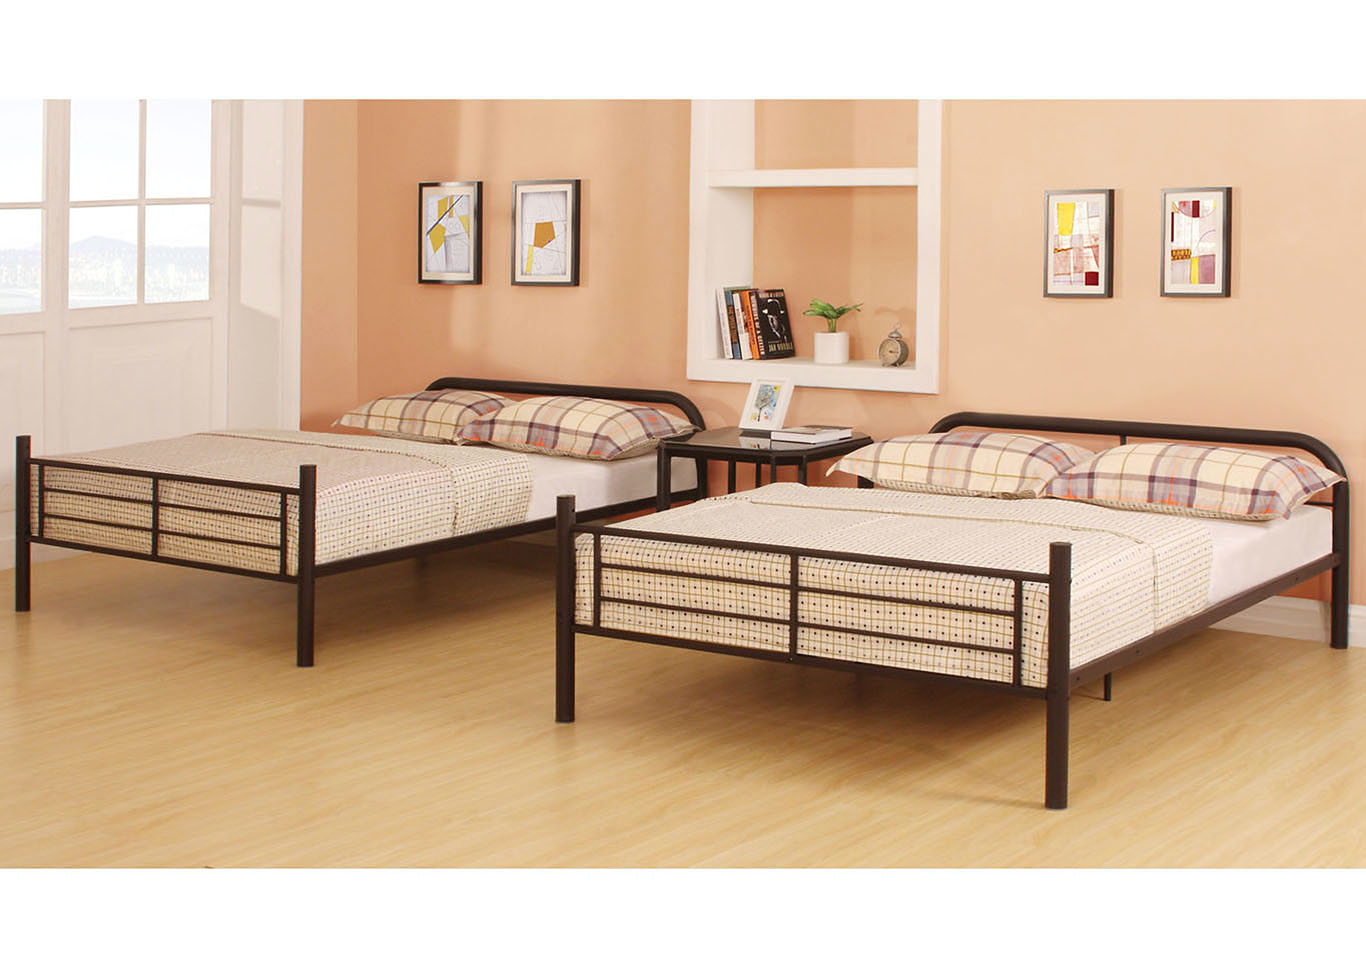 Bristol Brown Full/Full Bunk Bed,Acme